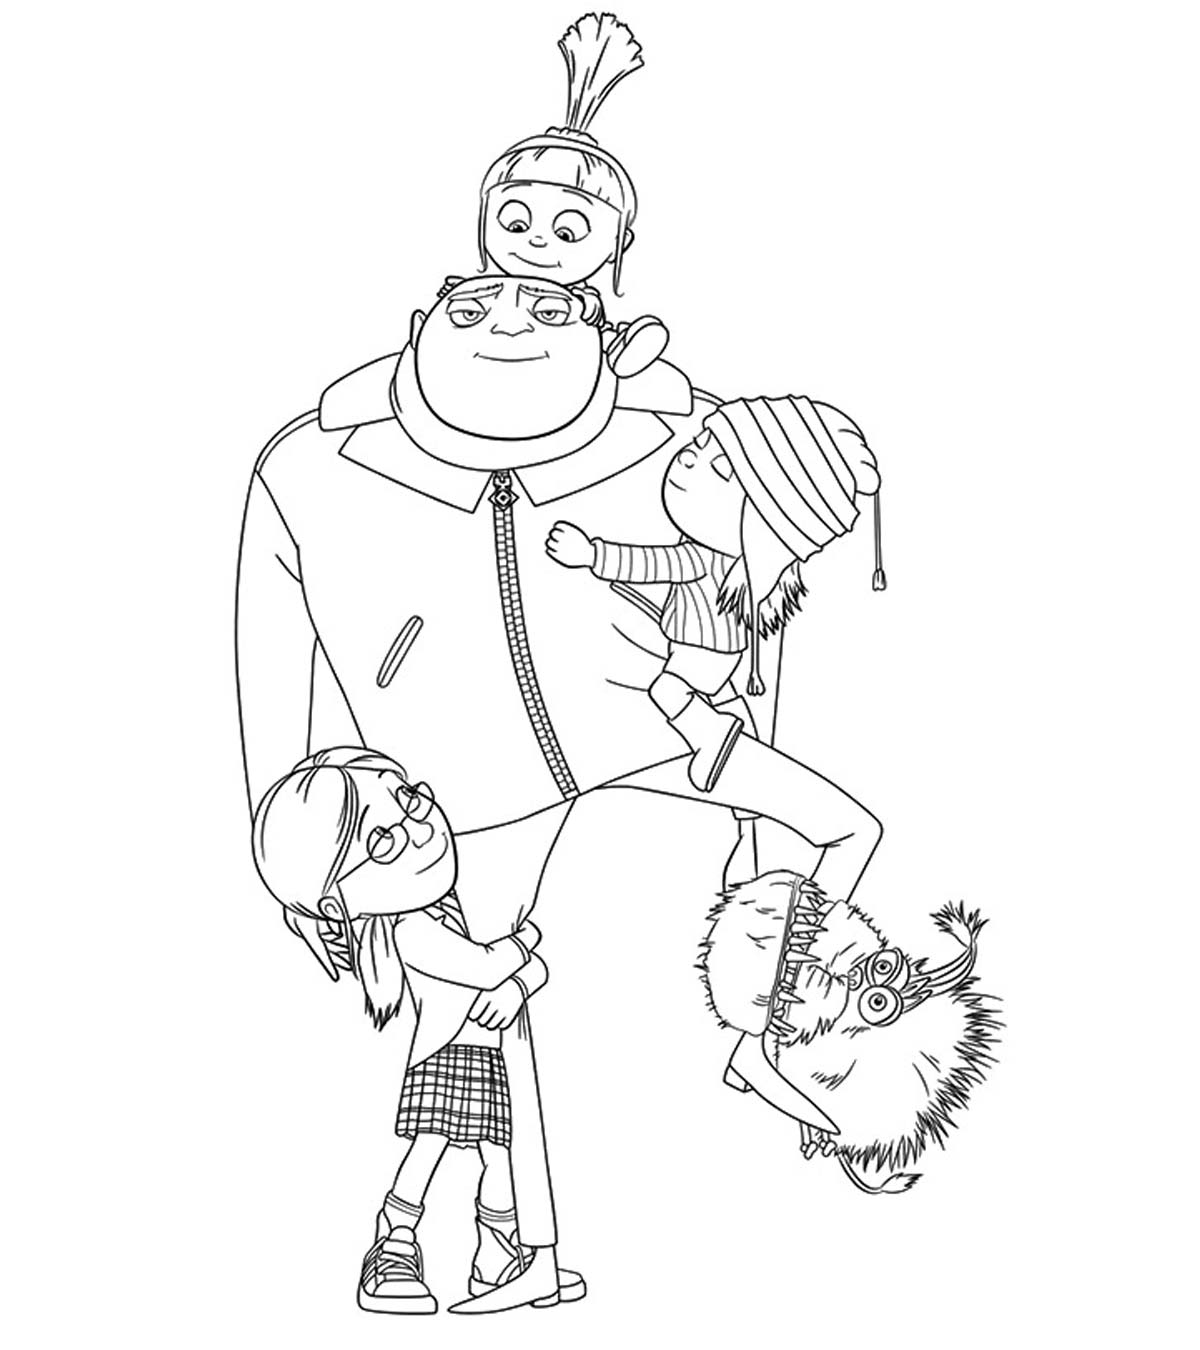 Minion Printable Coloring Pages Gallery Minion Coloring Pages Best ...   1350x1200